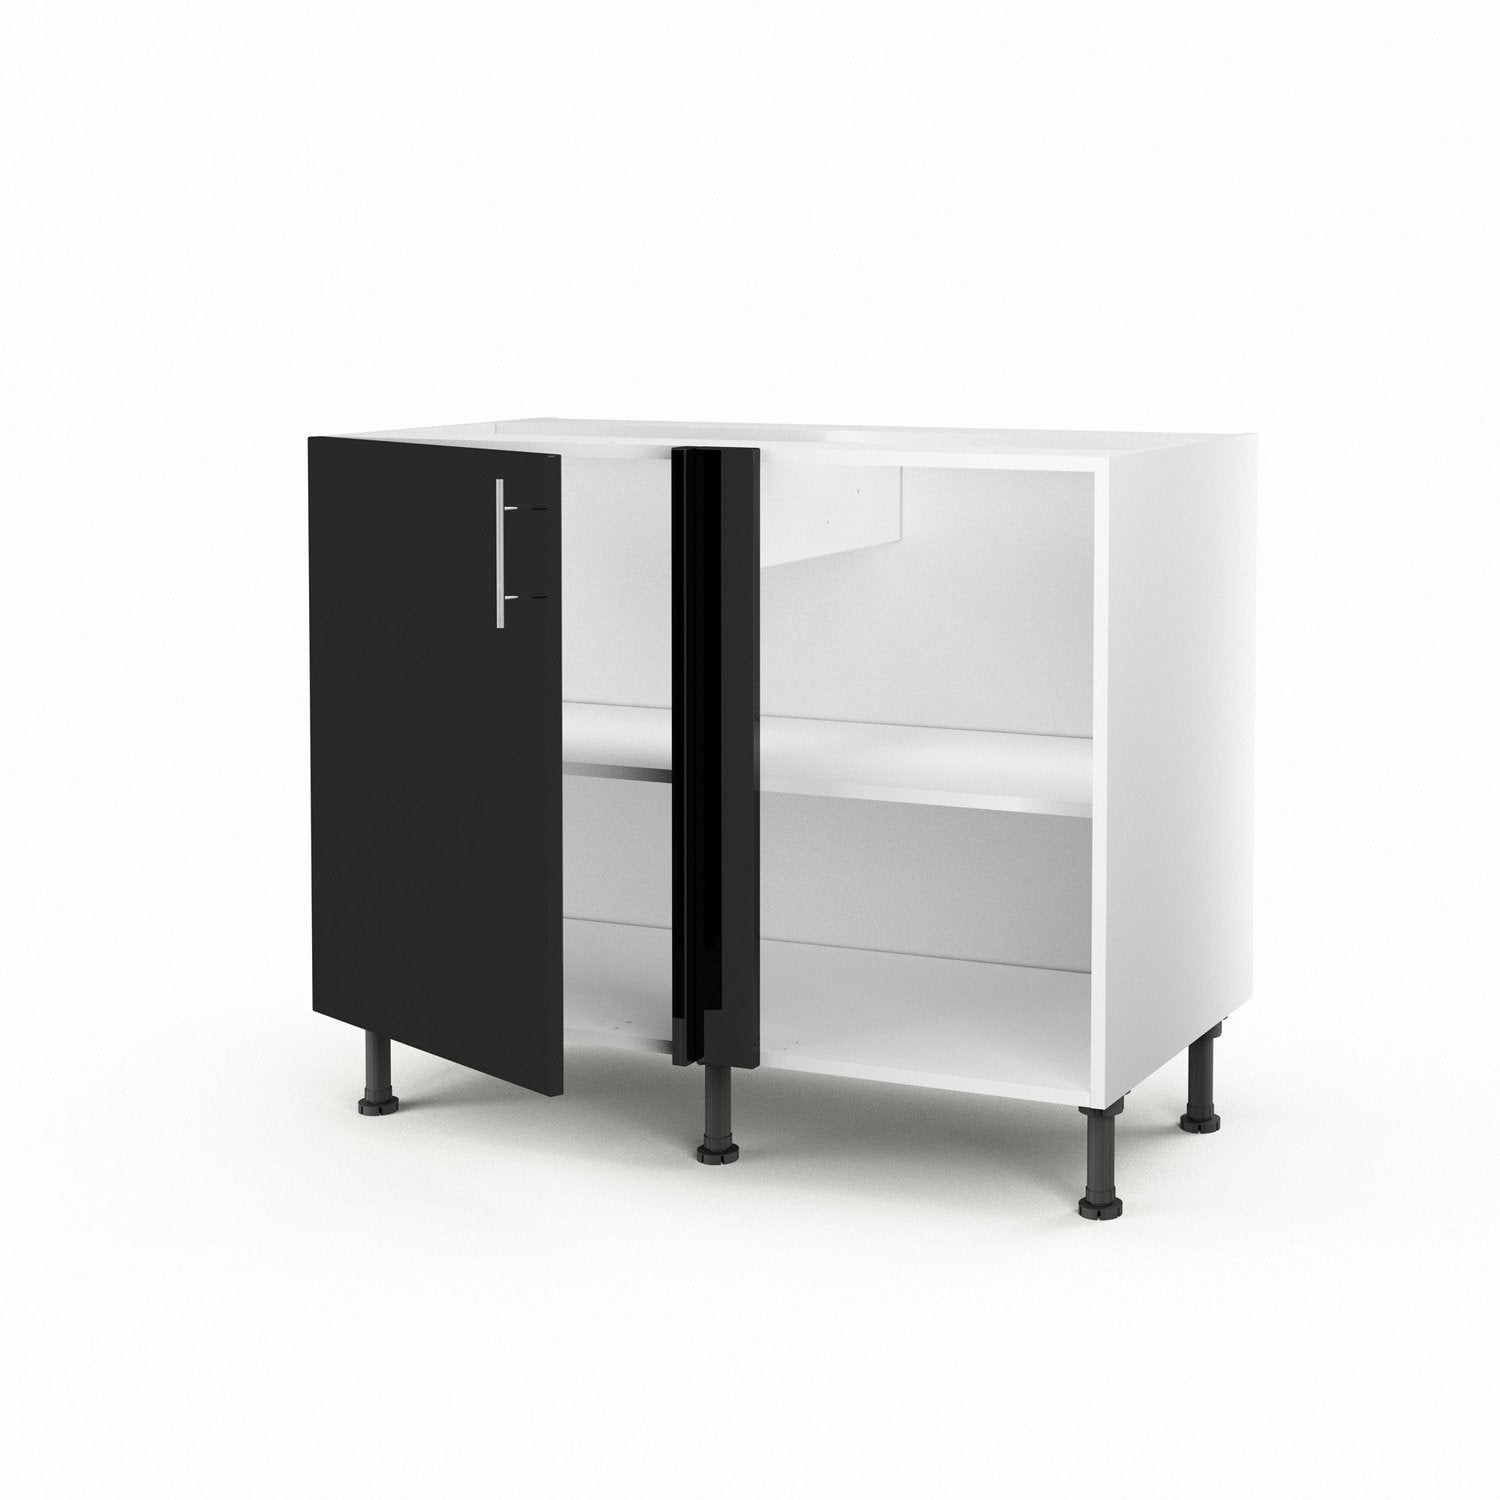 leroy merlin rangement meuble angle cuisine wroc awski informator internetowy wroc aw. Black Bedroom Furniture Sets. Home Design Ideas